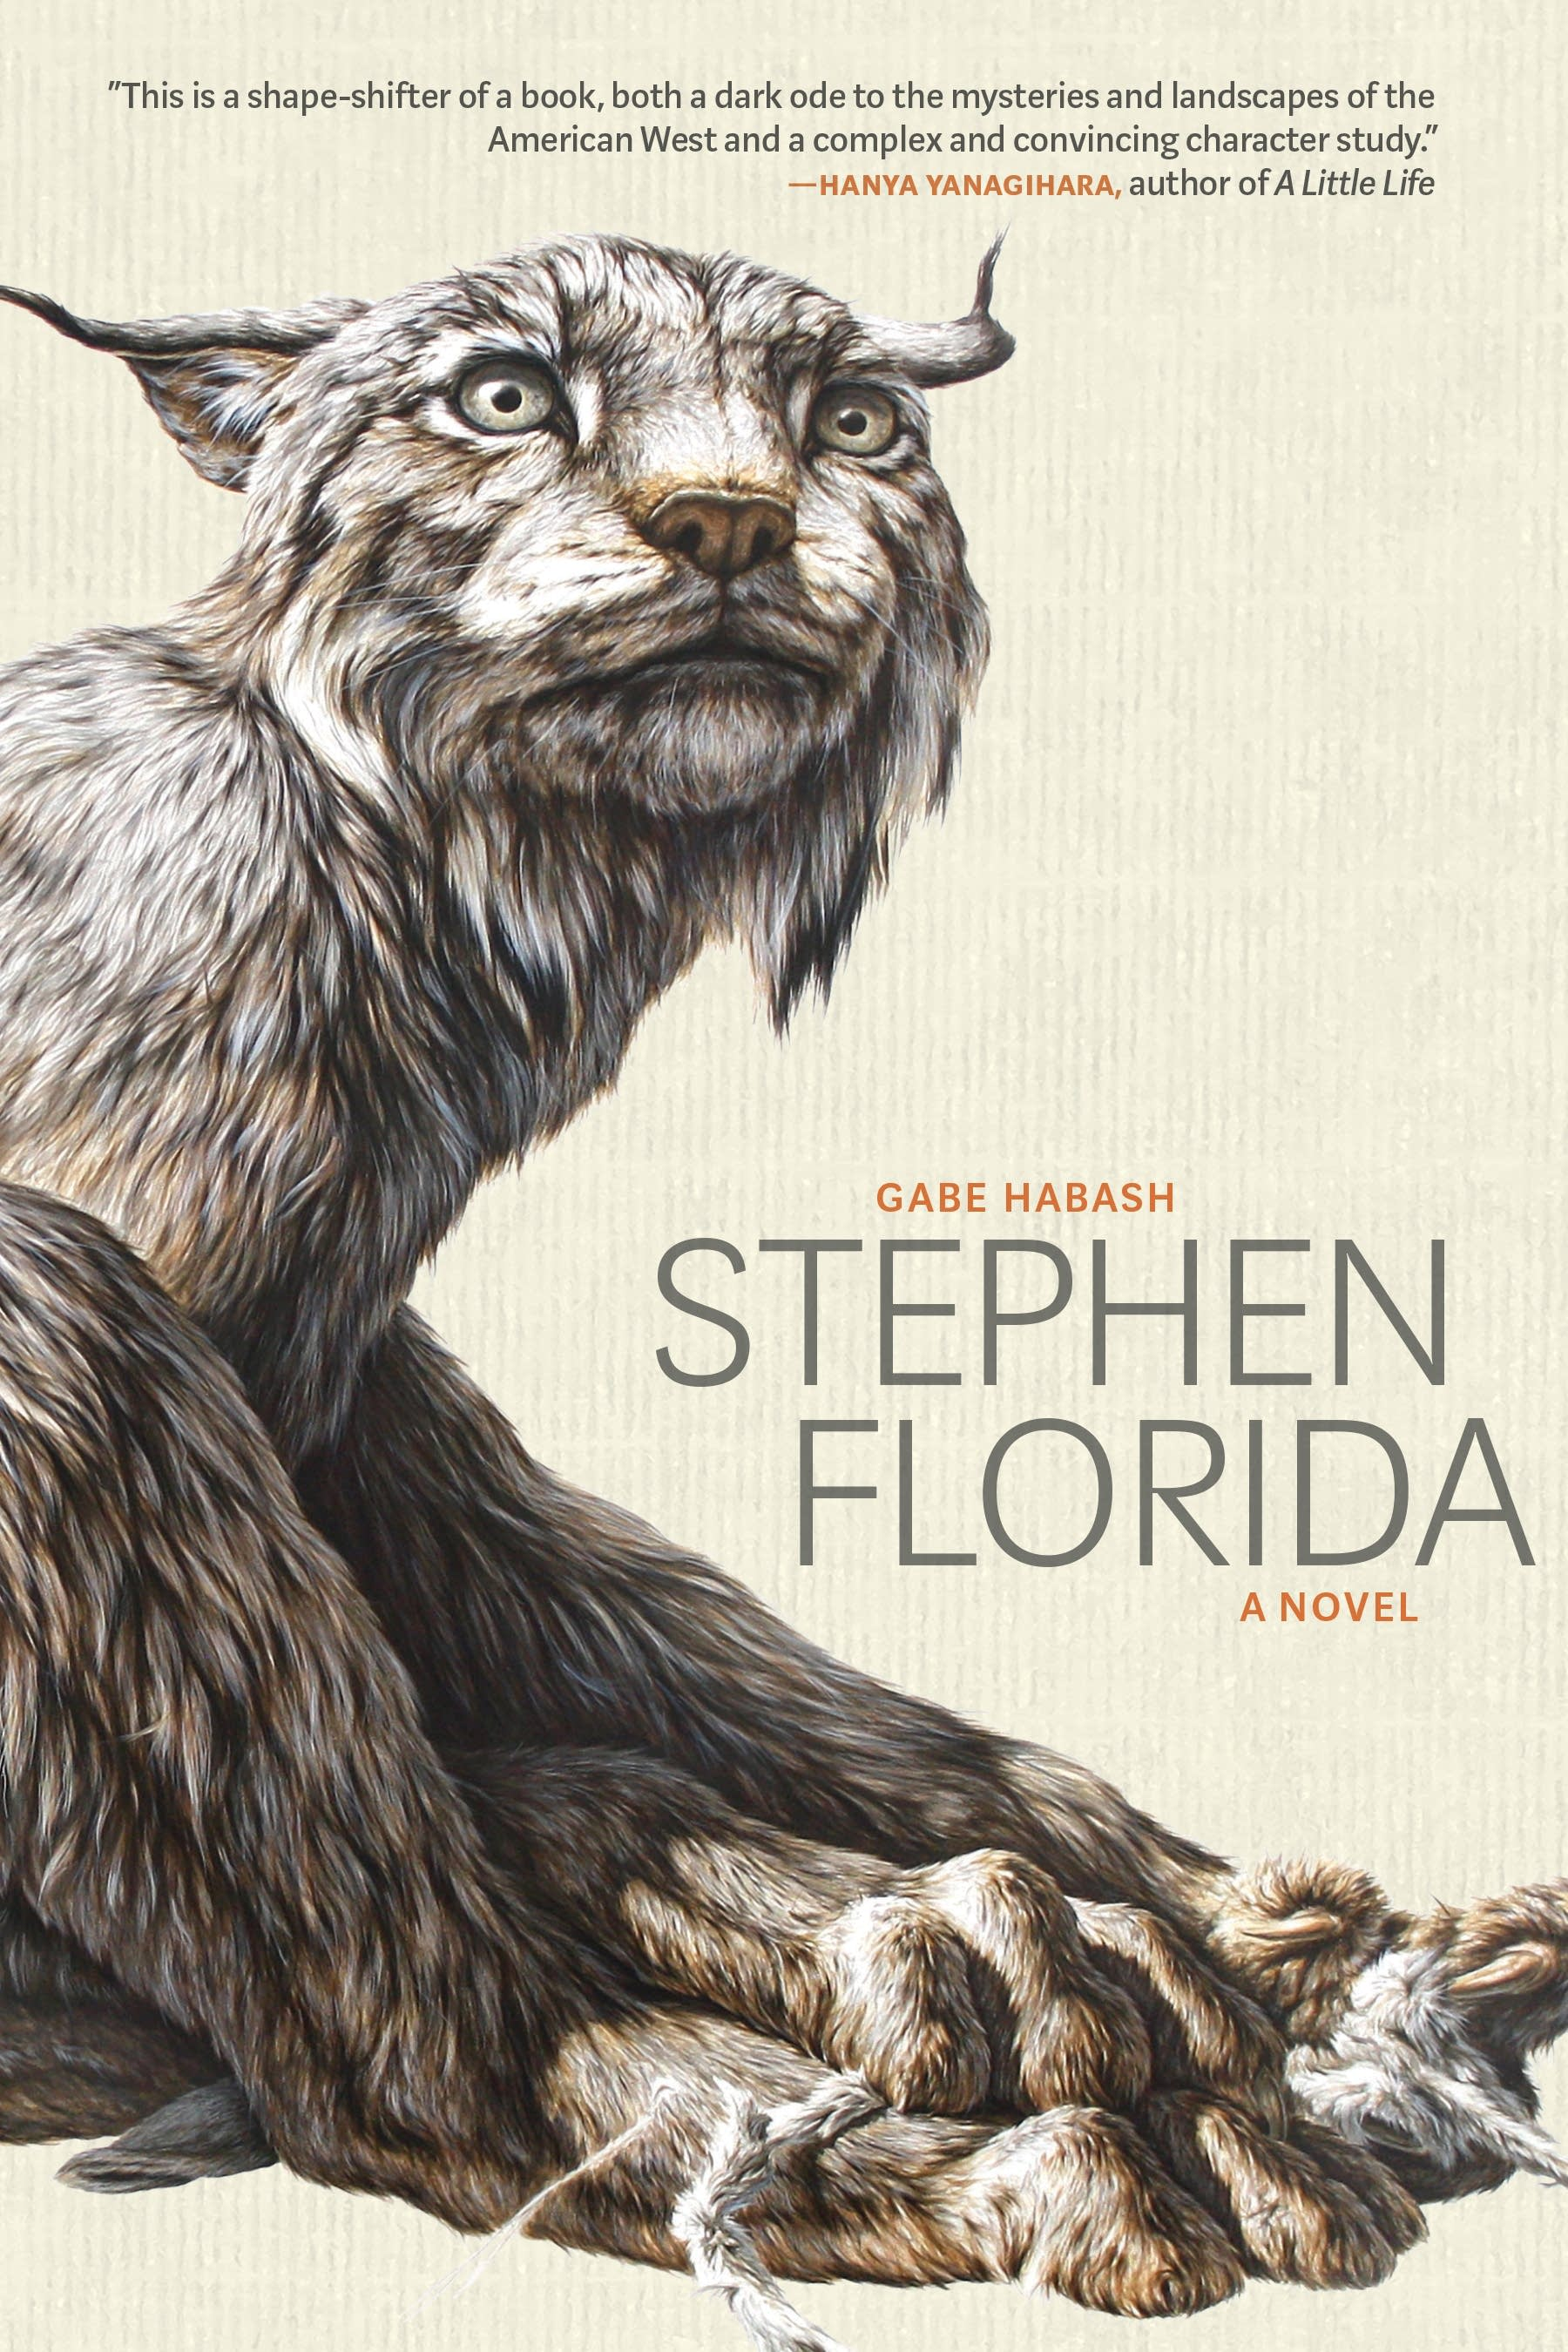 'Stephen Florida' by Gabe Habash